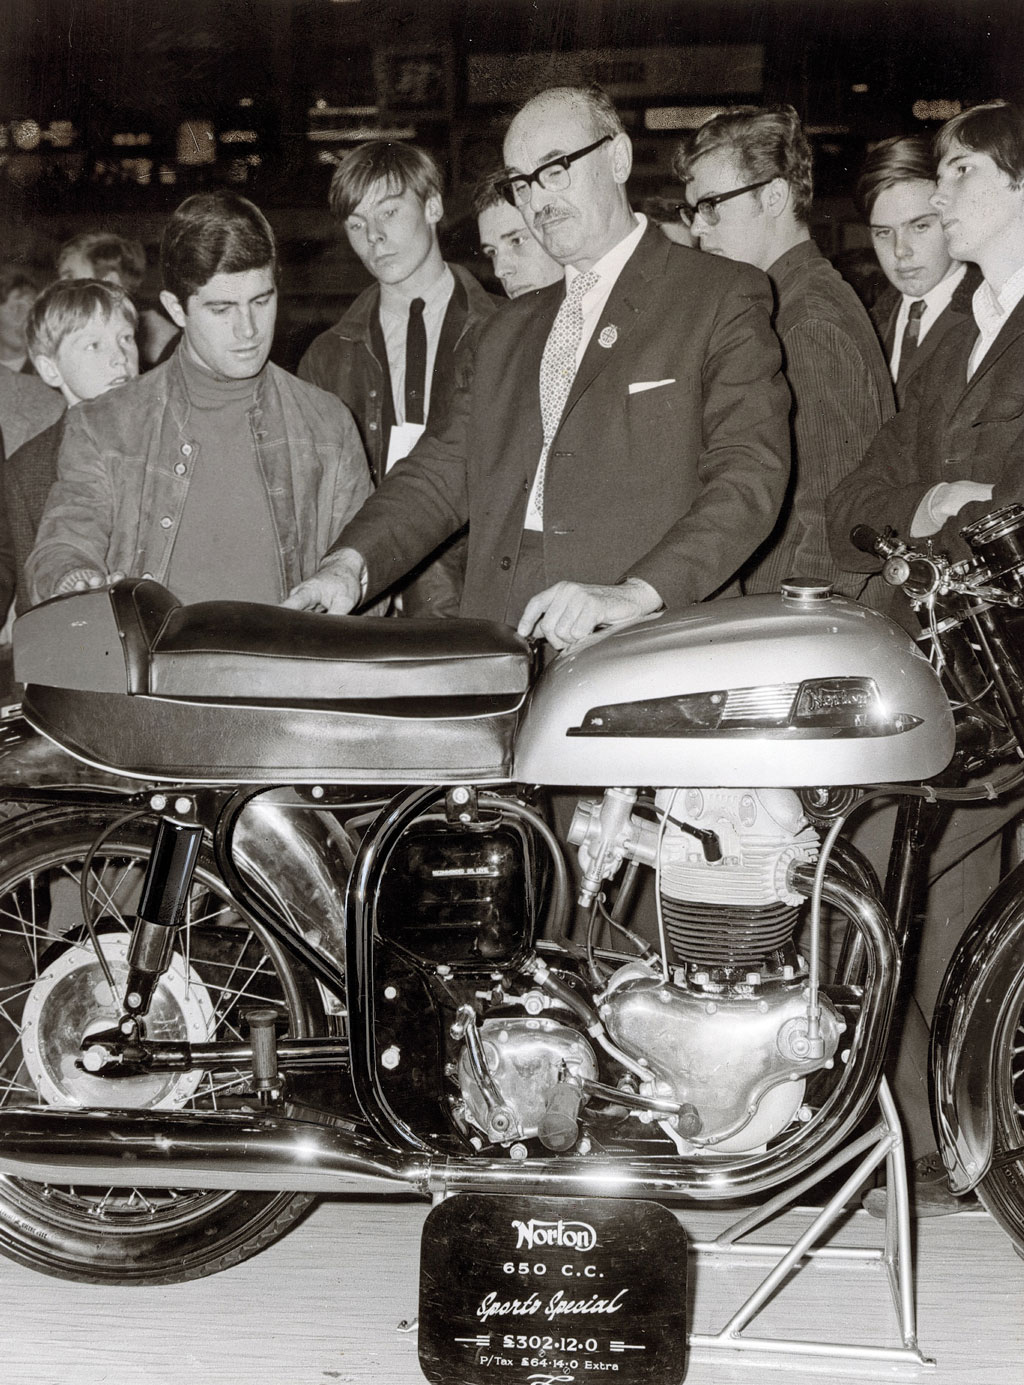 Giacomo Agostini chooses a seat for his 350SS, at the 1966 motorcycle show.